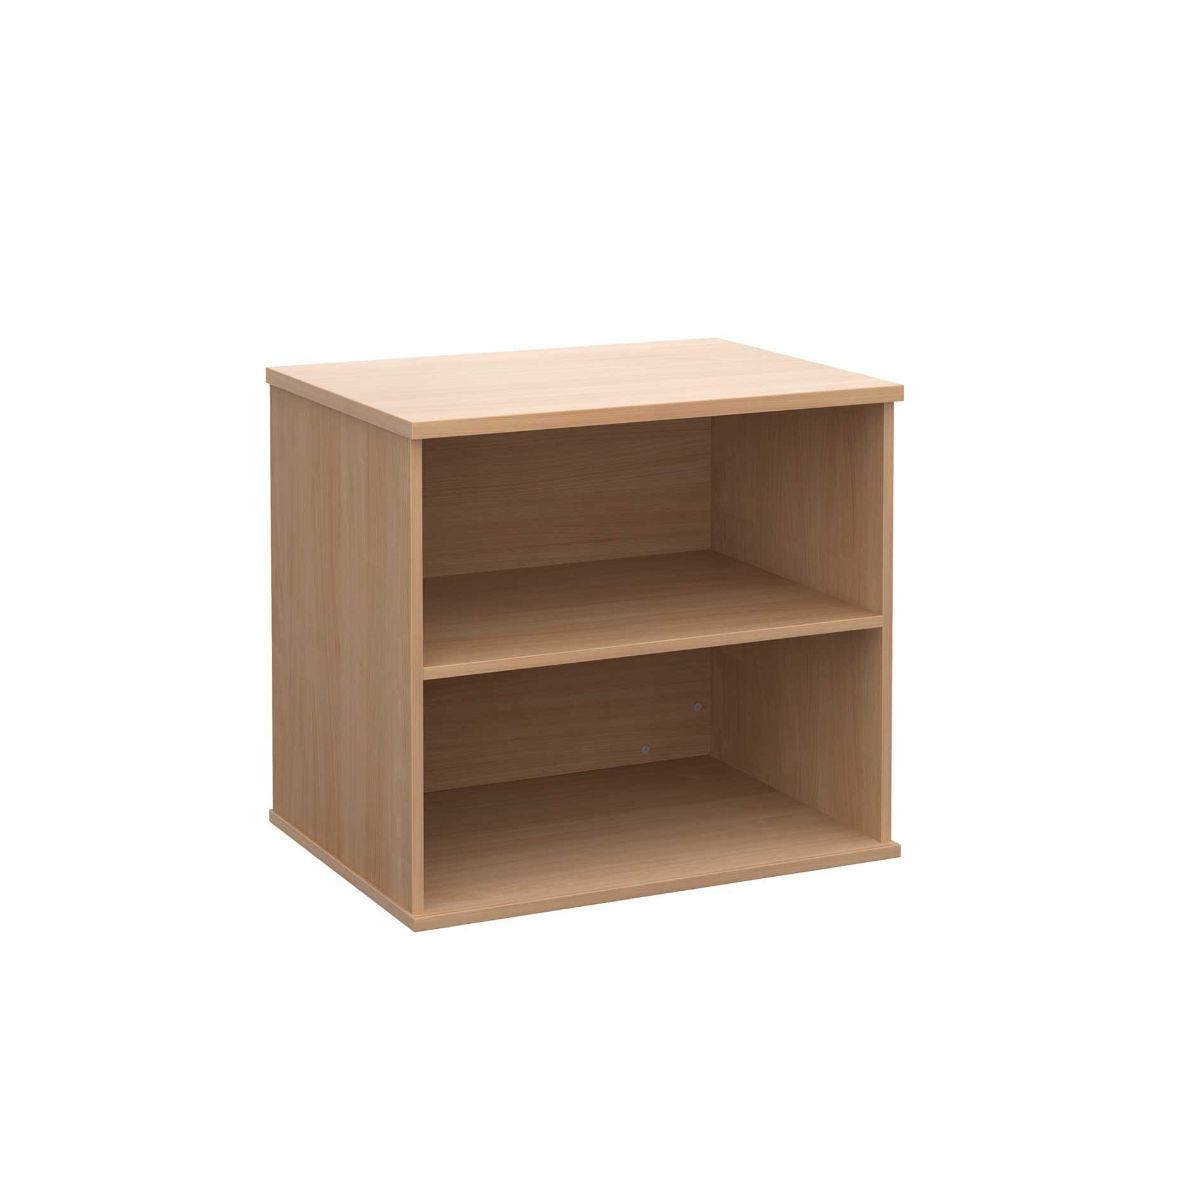 Desk High Bookcase with 1 Shelf, Beech